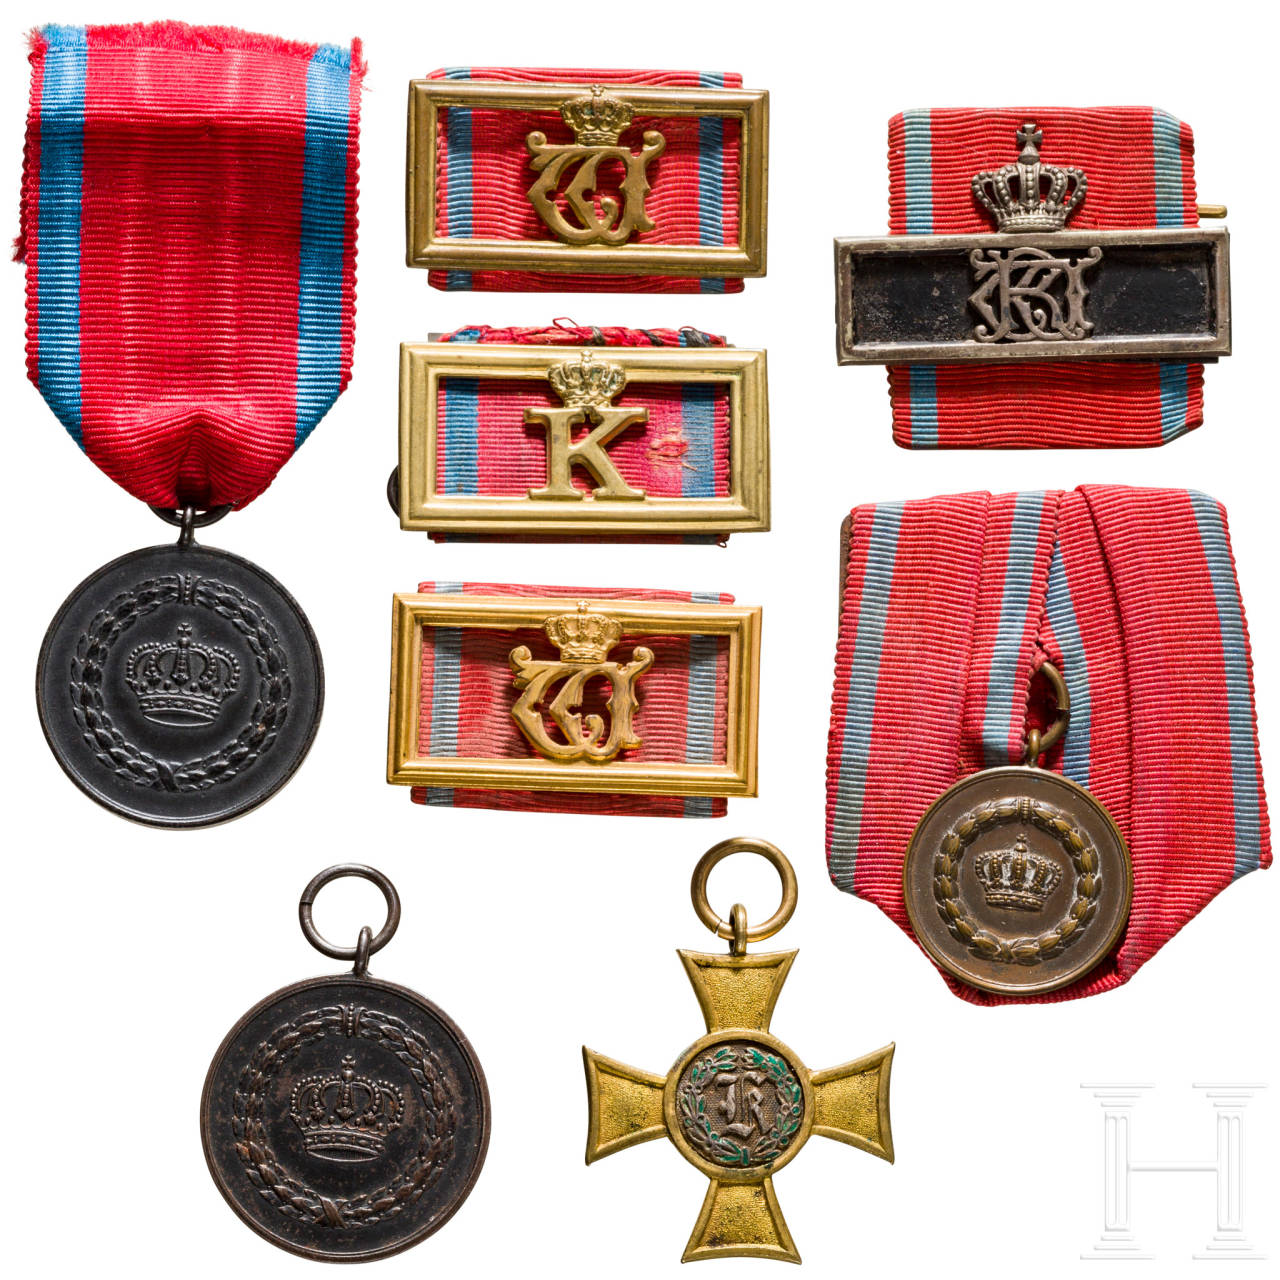 Group of service awards